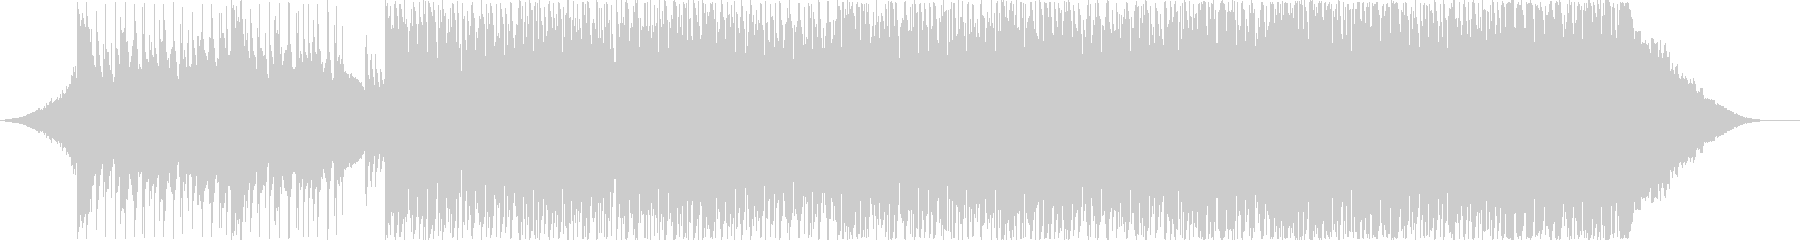 EDM with the image of a blue sky's unreproduced waveform